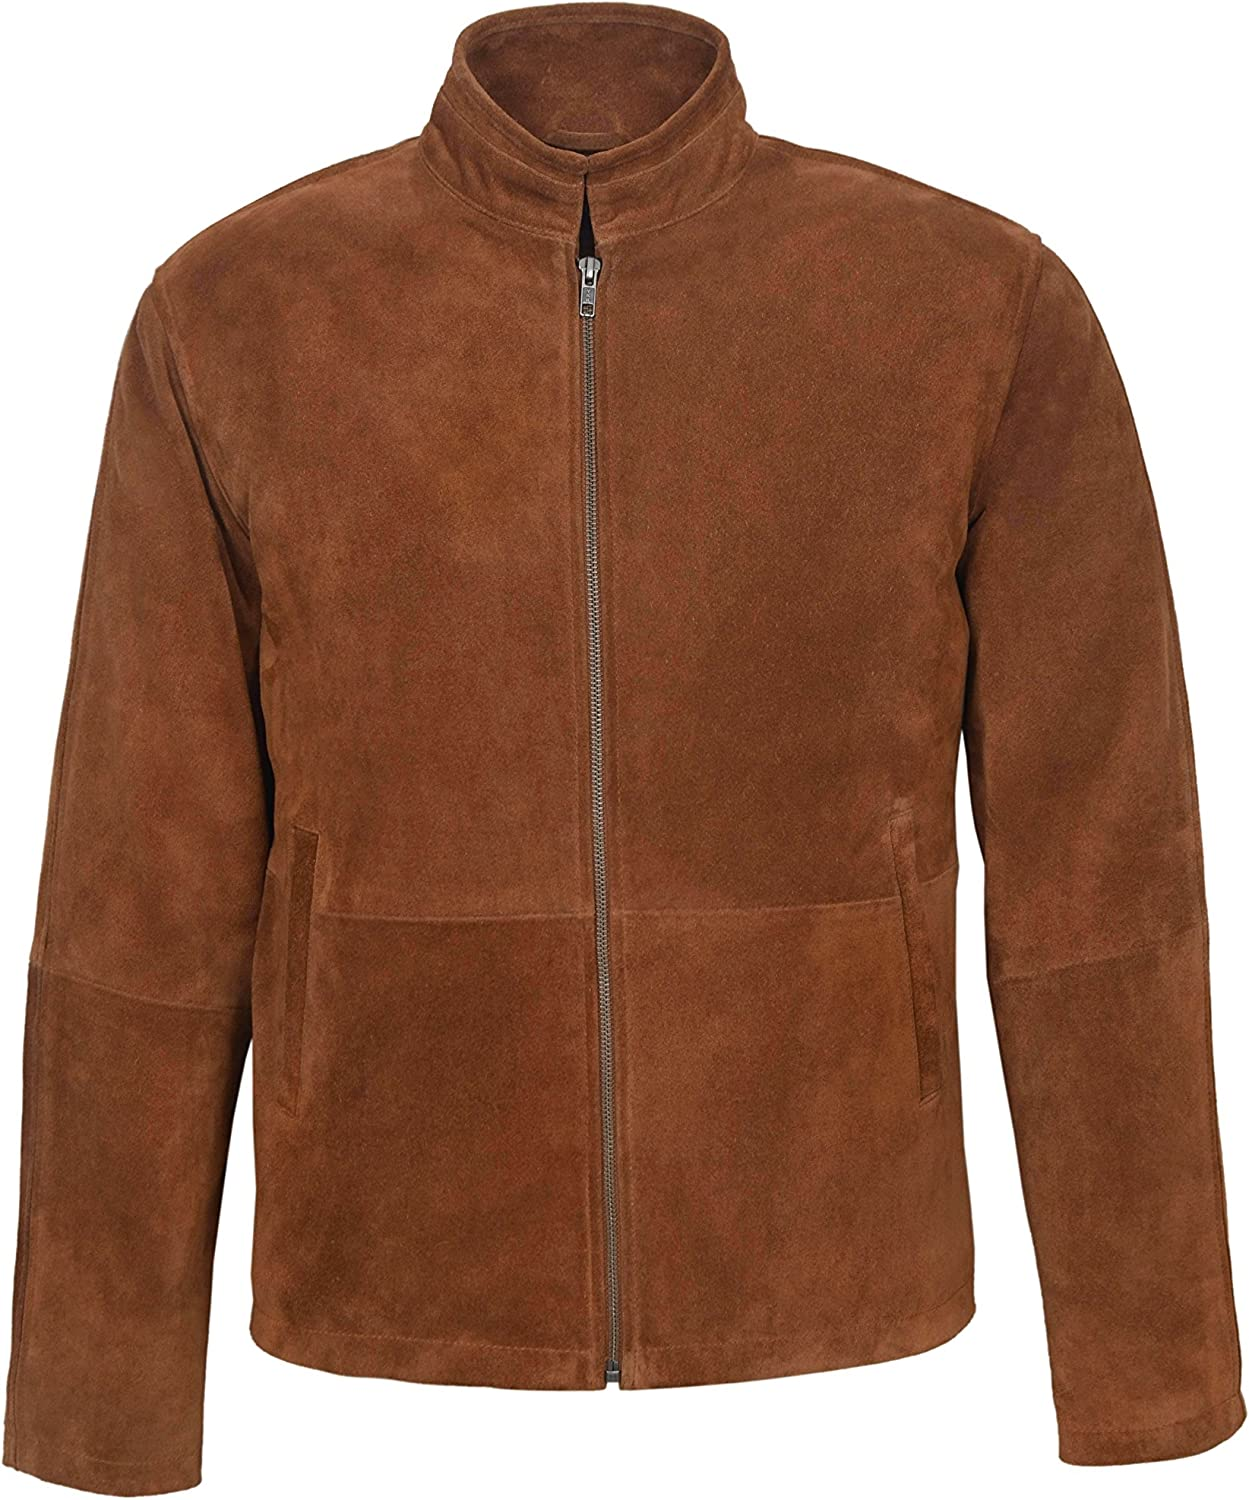 New Men's Tom Cruise Mission Impossible Tan Classic Biker Style Real Suede Leather Jacket 5917